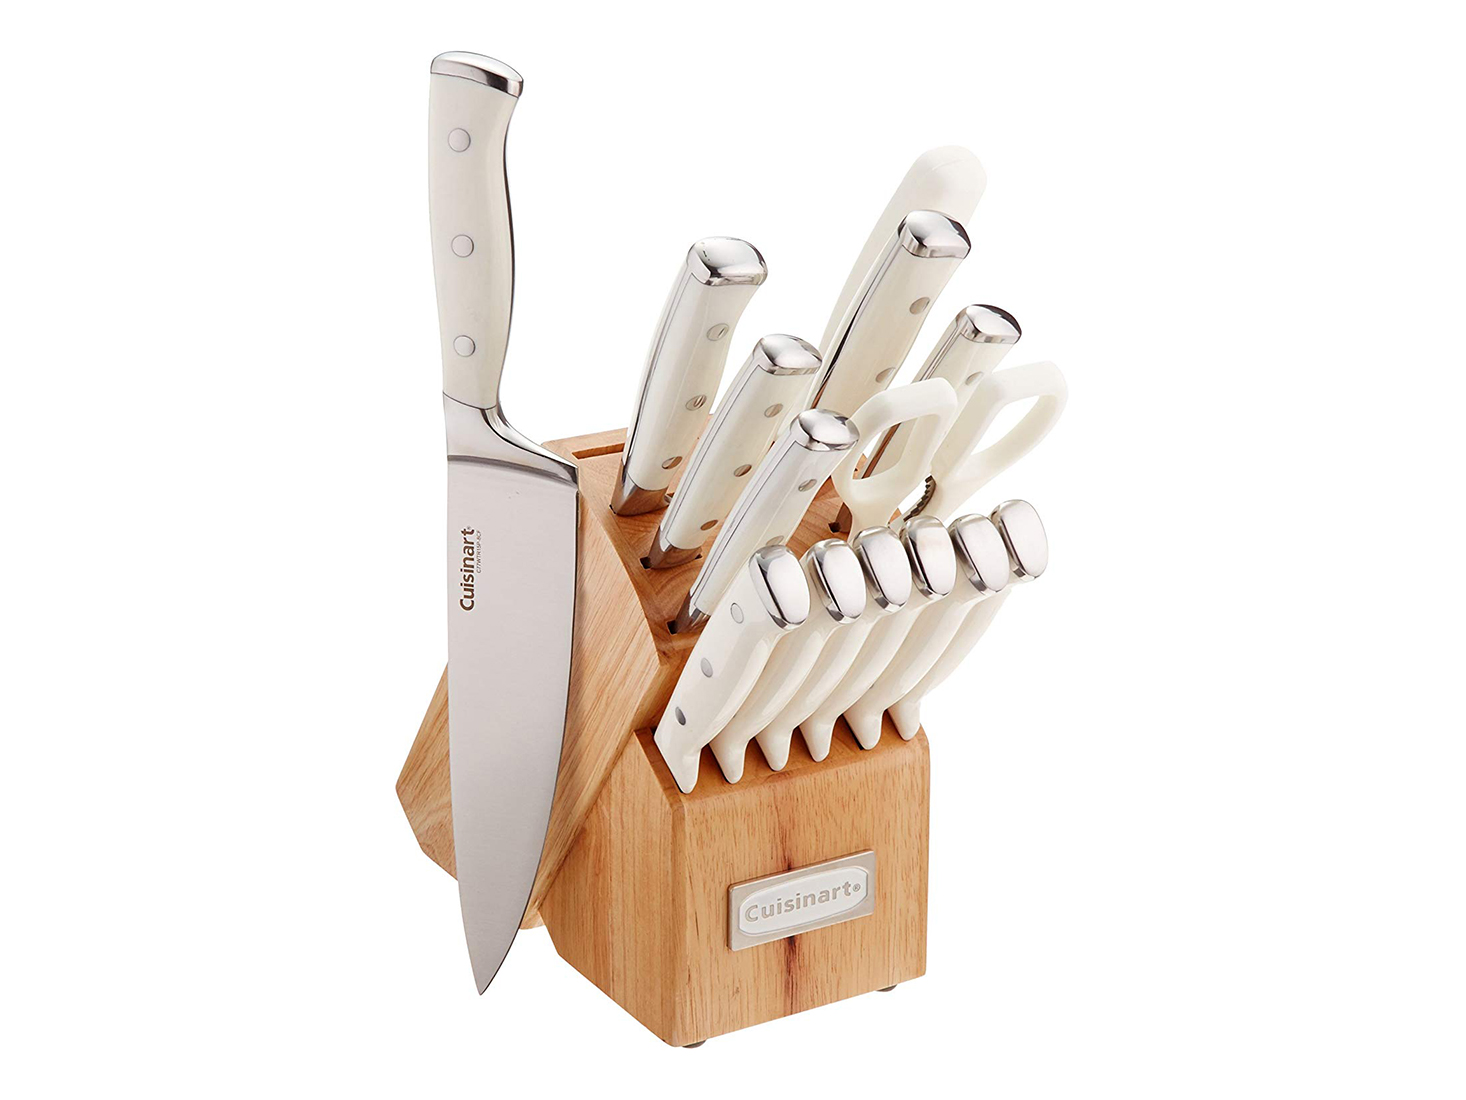 Cuisinart C77WTR-15P Triple Rivet Collection 15-Piece Cutlery Block Set